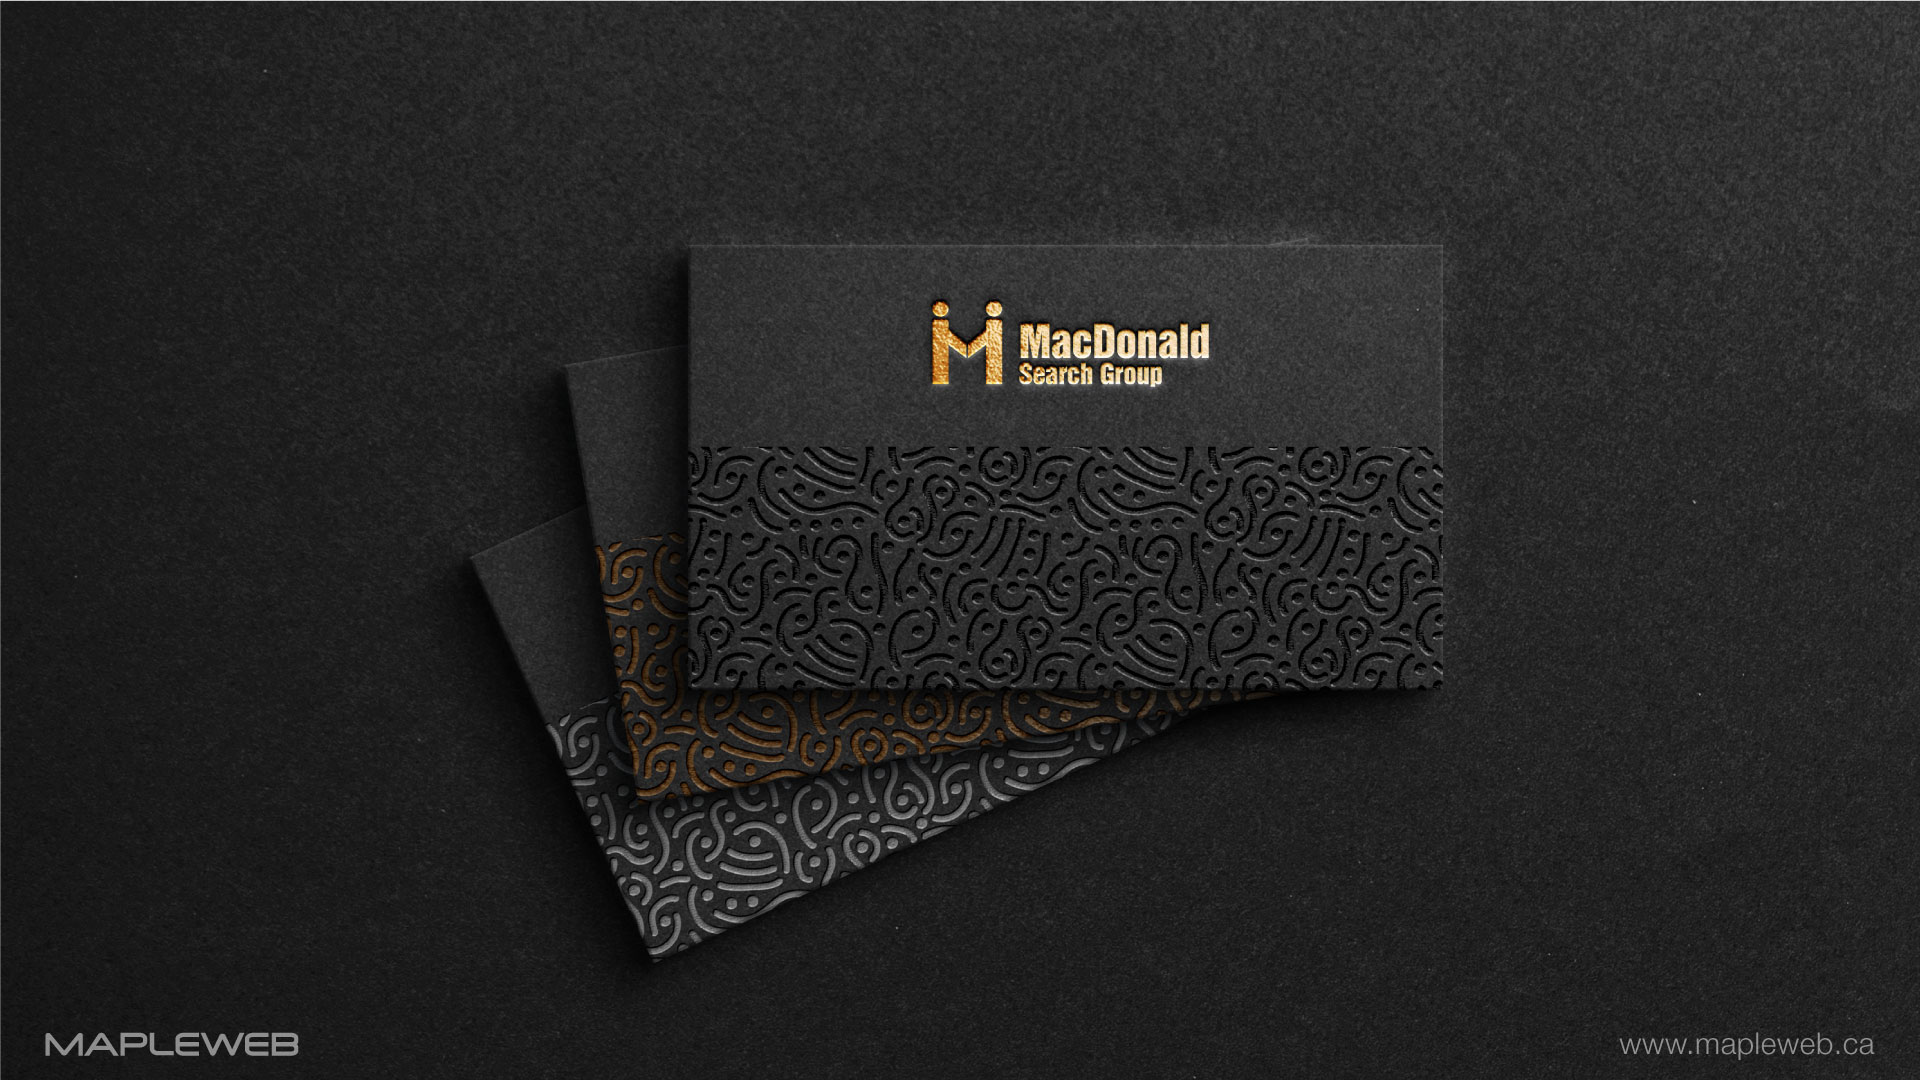 macdonald-search-group-brand-logo-design-by-mapleweb-vancouver-canada-black-business-card-mock